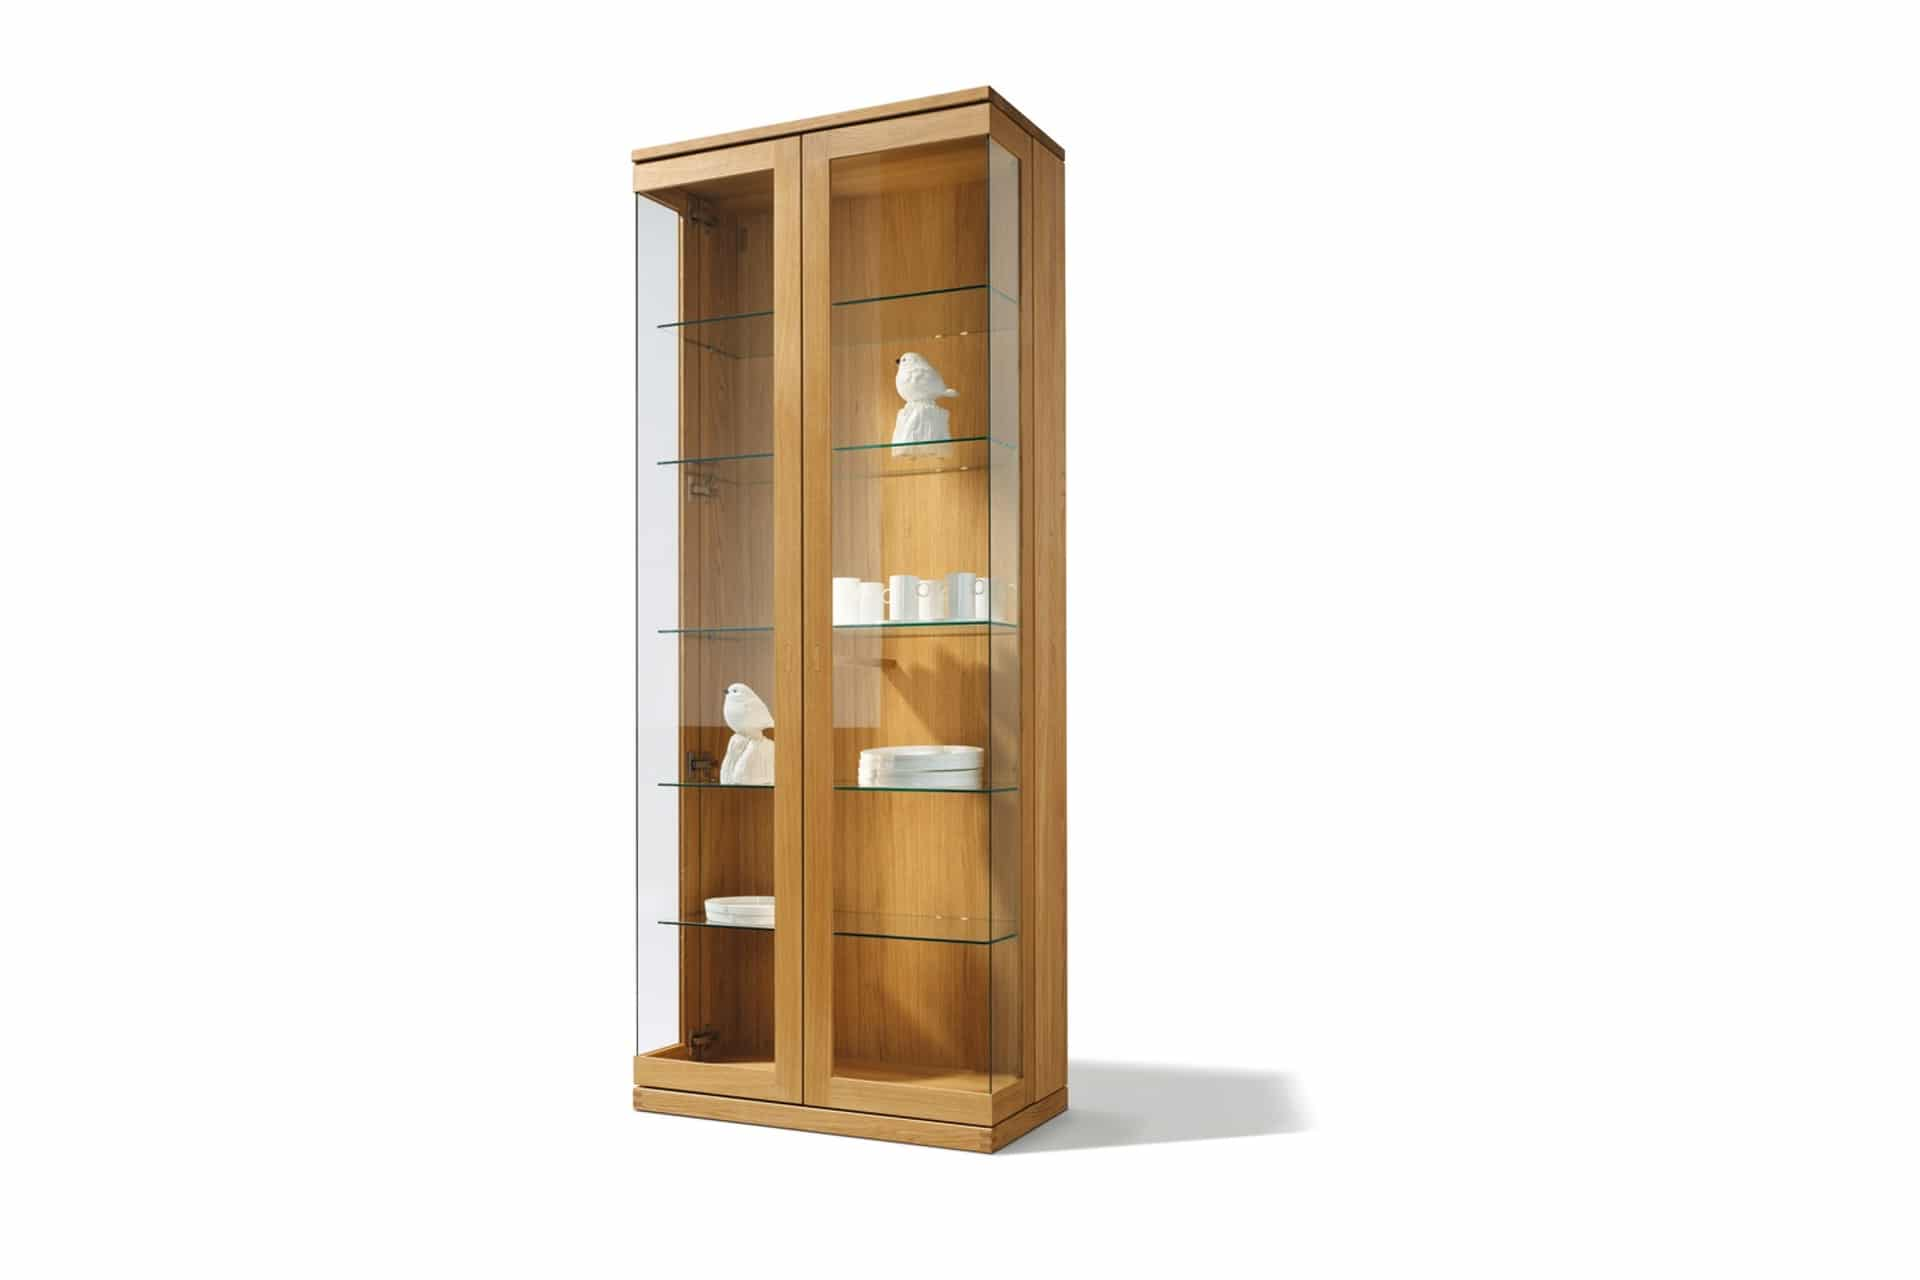 vitrine cubus kohler nat rlich einrichten naturholzm bel team 7 naturm bel massivholzm bel. Black Bedroom Furniture Sets. Home Design Ideas